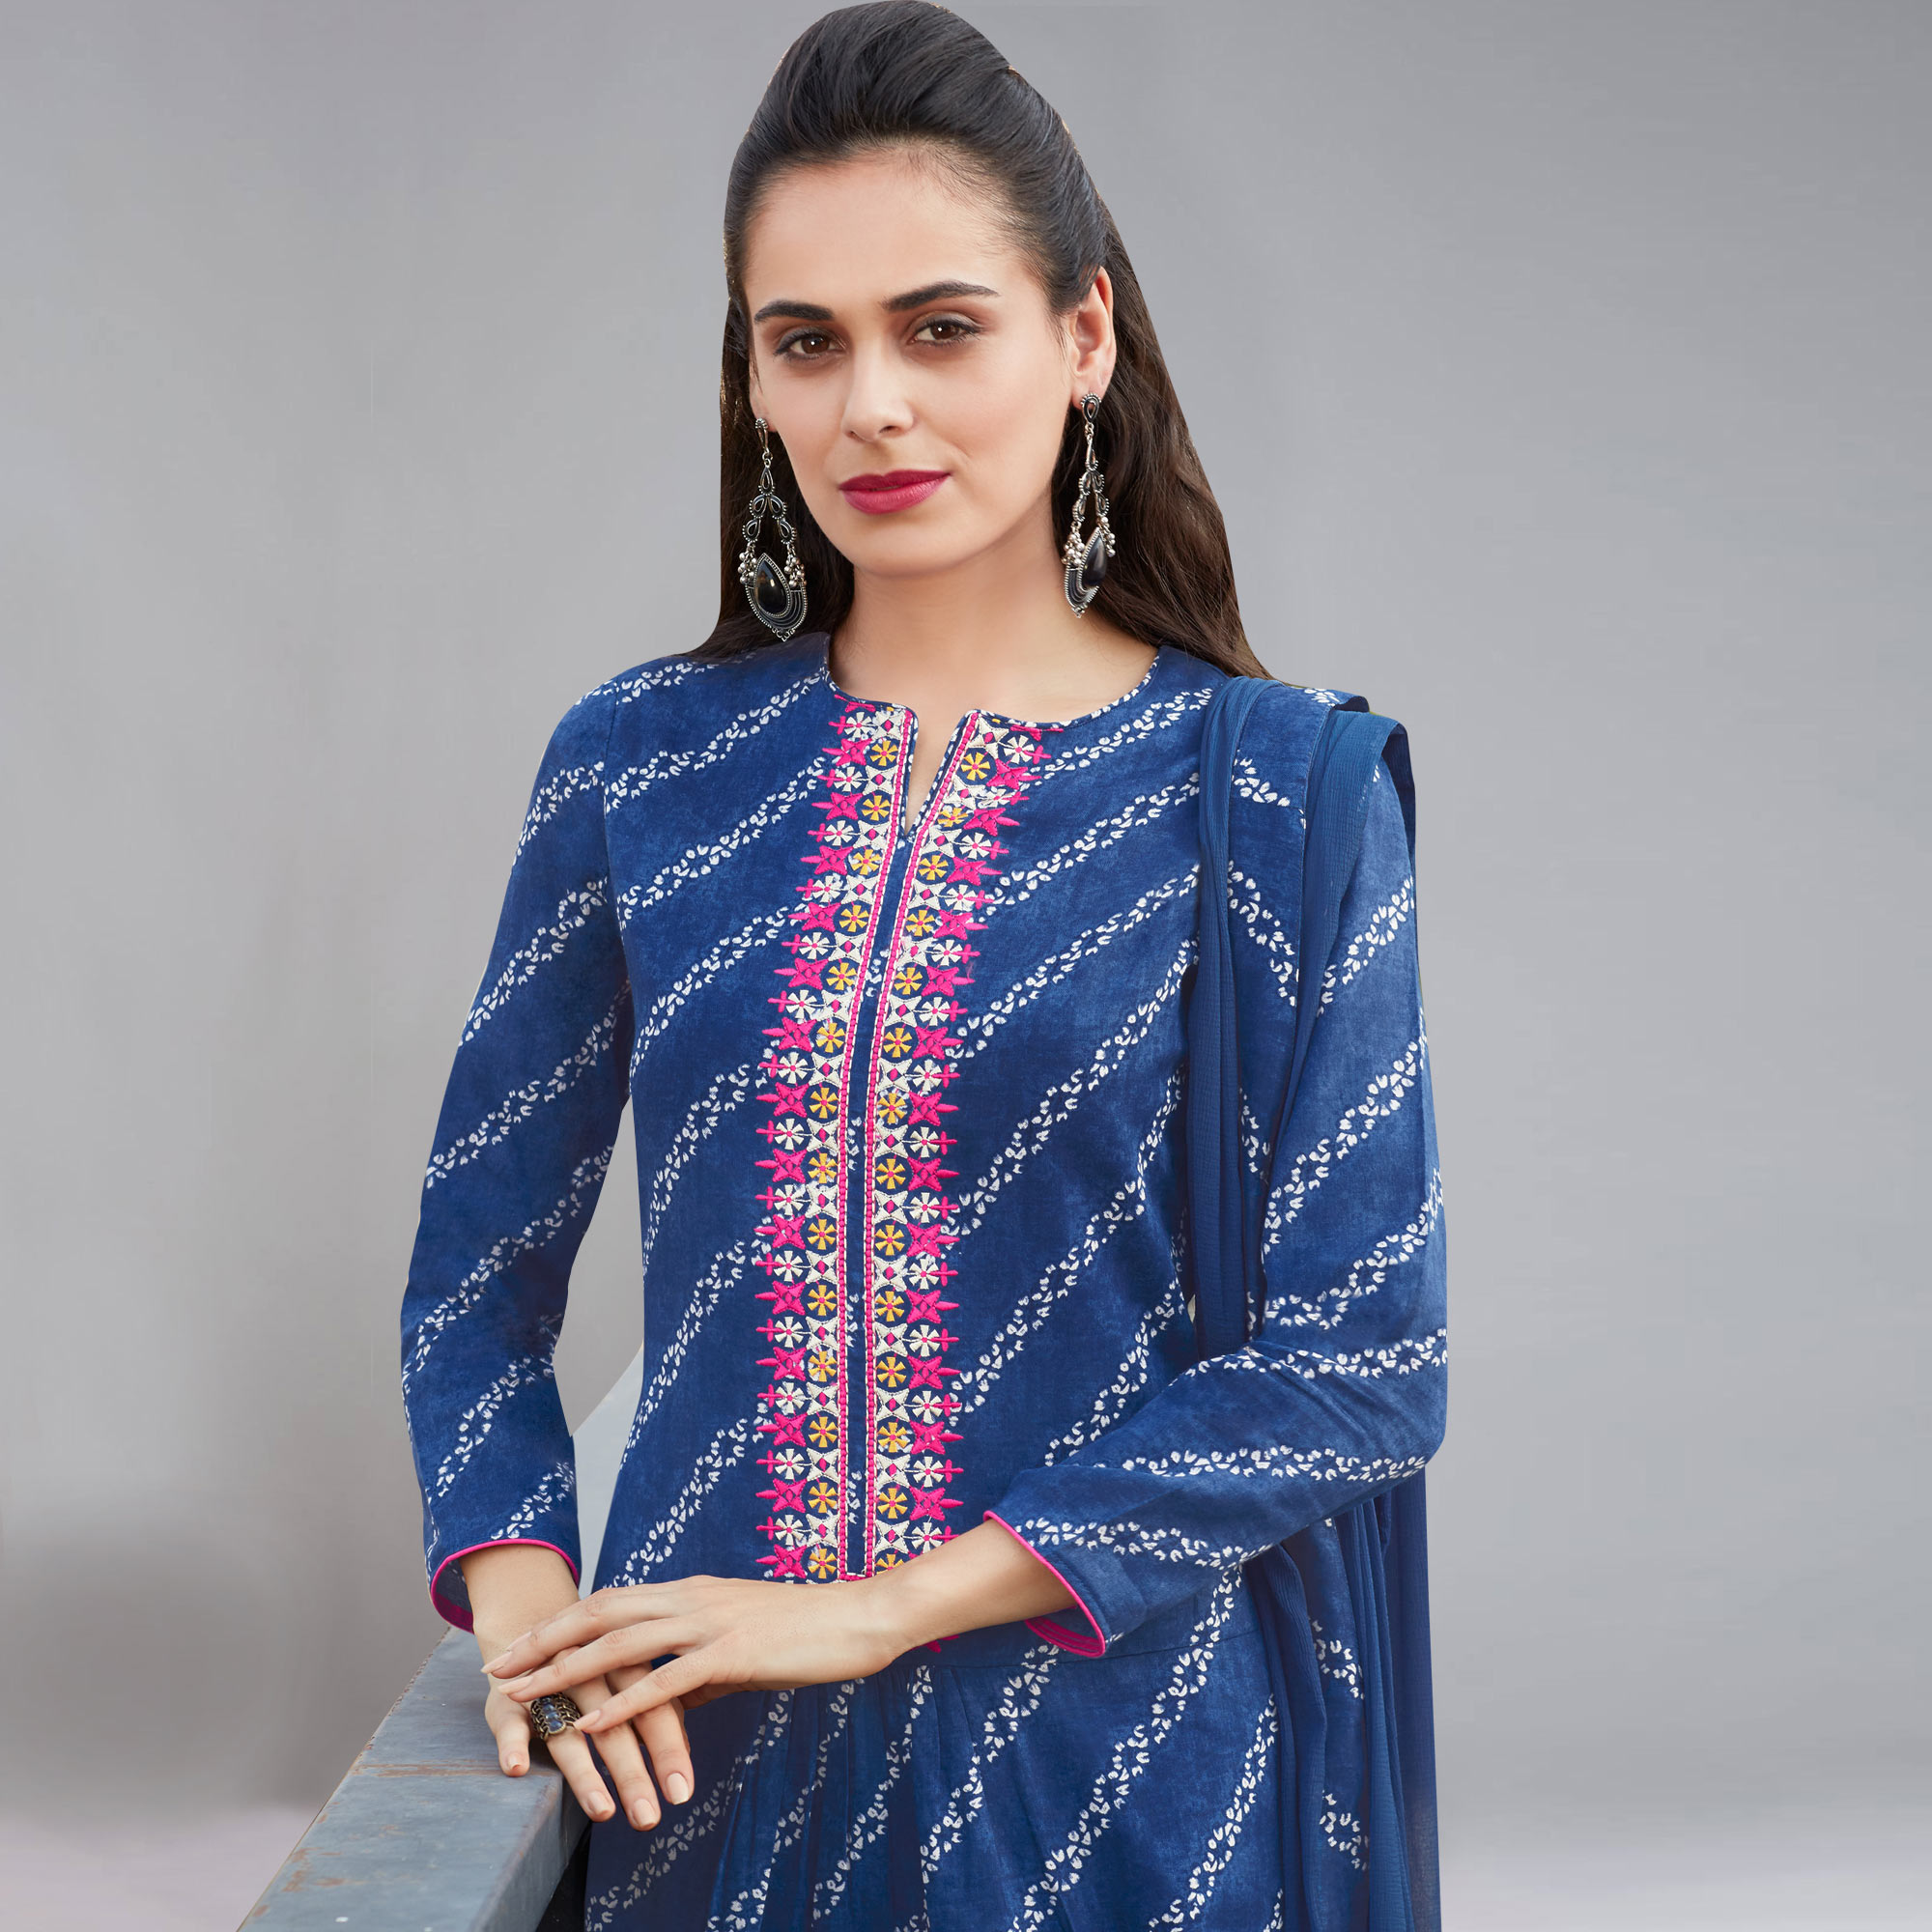 Stylish Blue Colored Casual Printed Cotton Salwar Suit